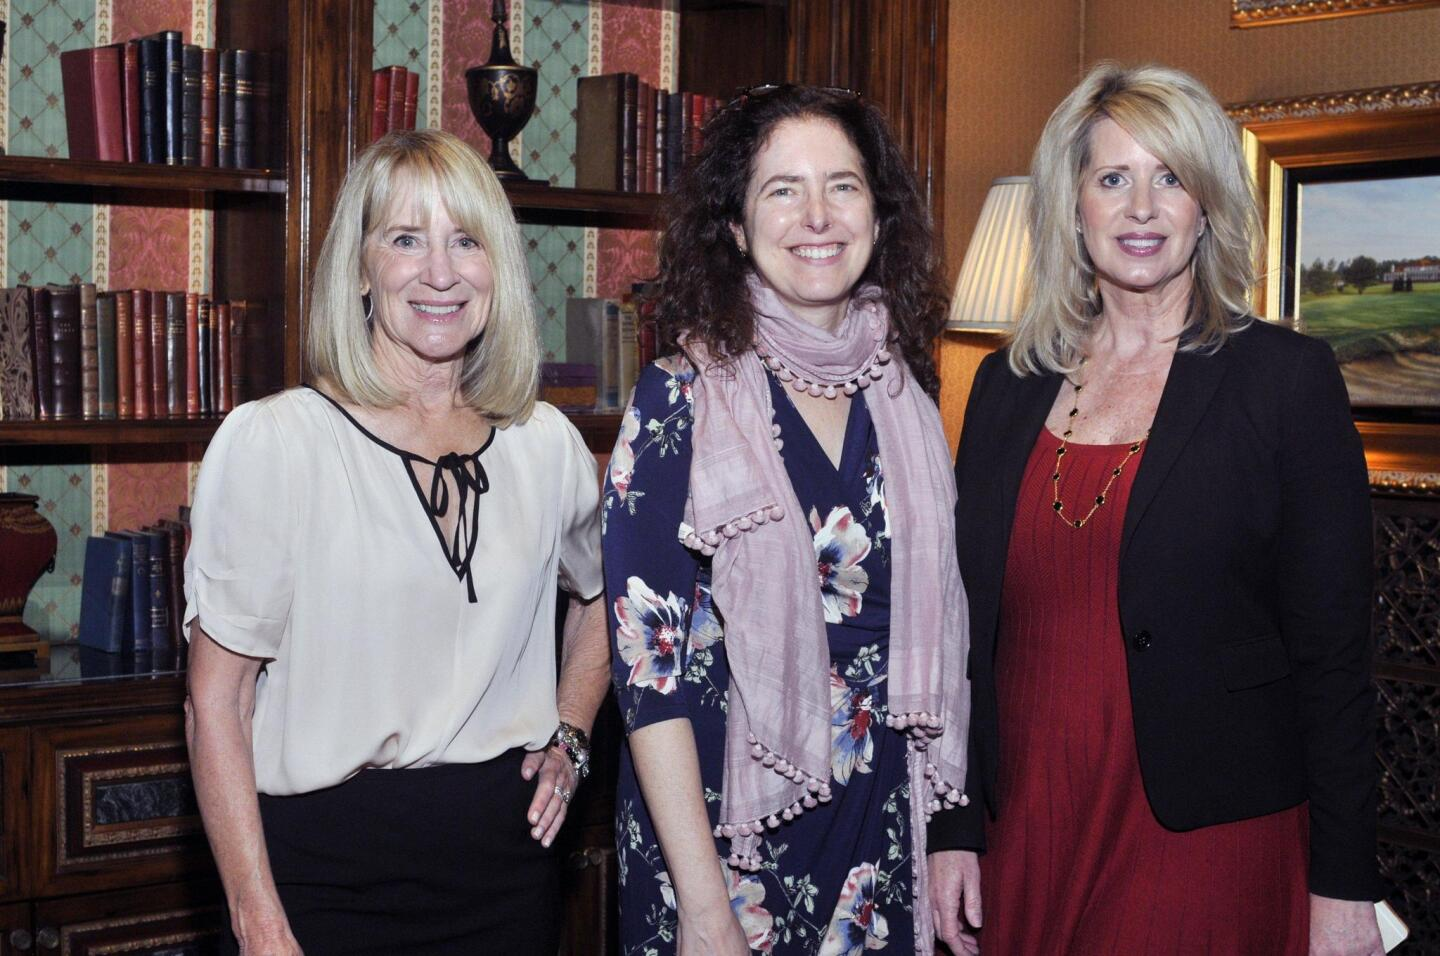 RSF Literary Society President Candace Humber, author Diana Abu-Jaber, Northern Trust Events and Marketing manager Kelly Covard